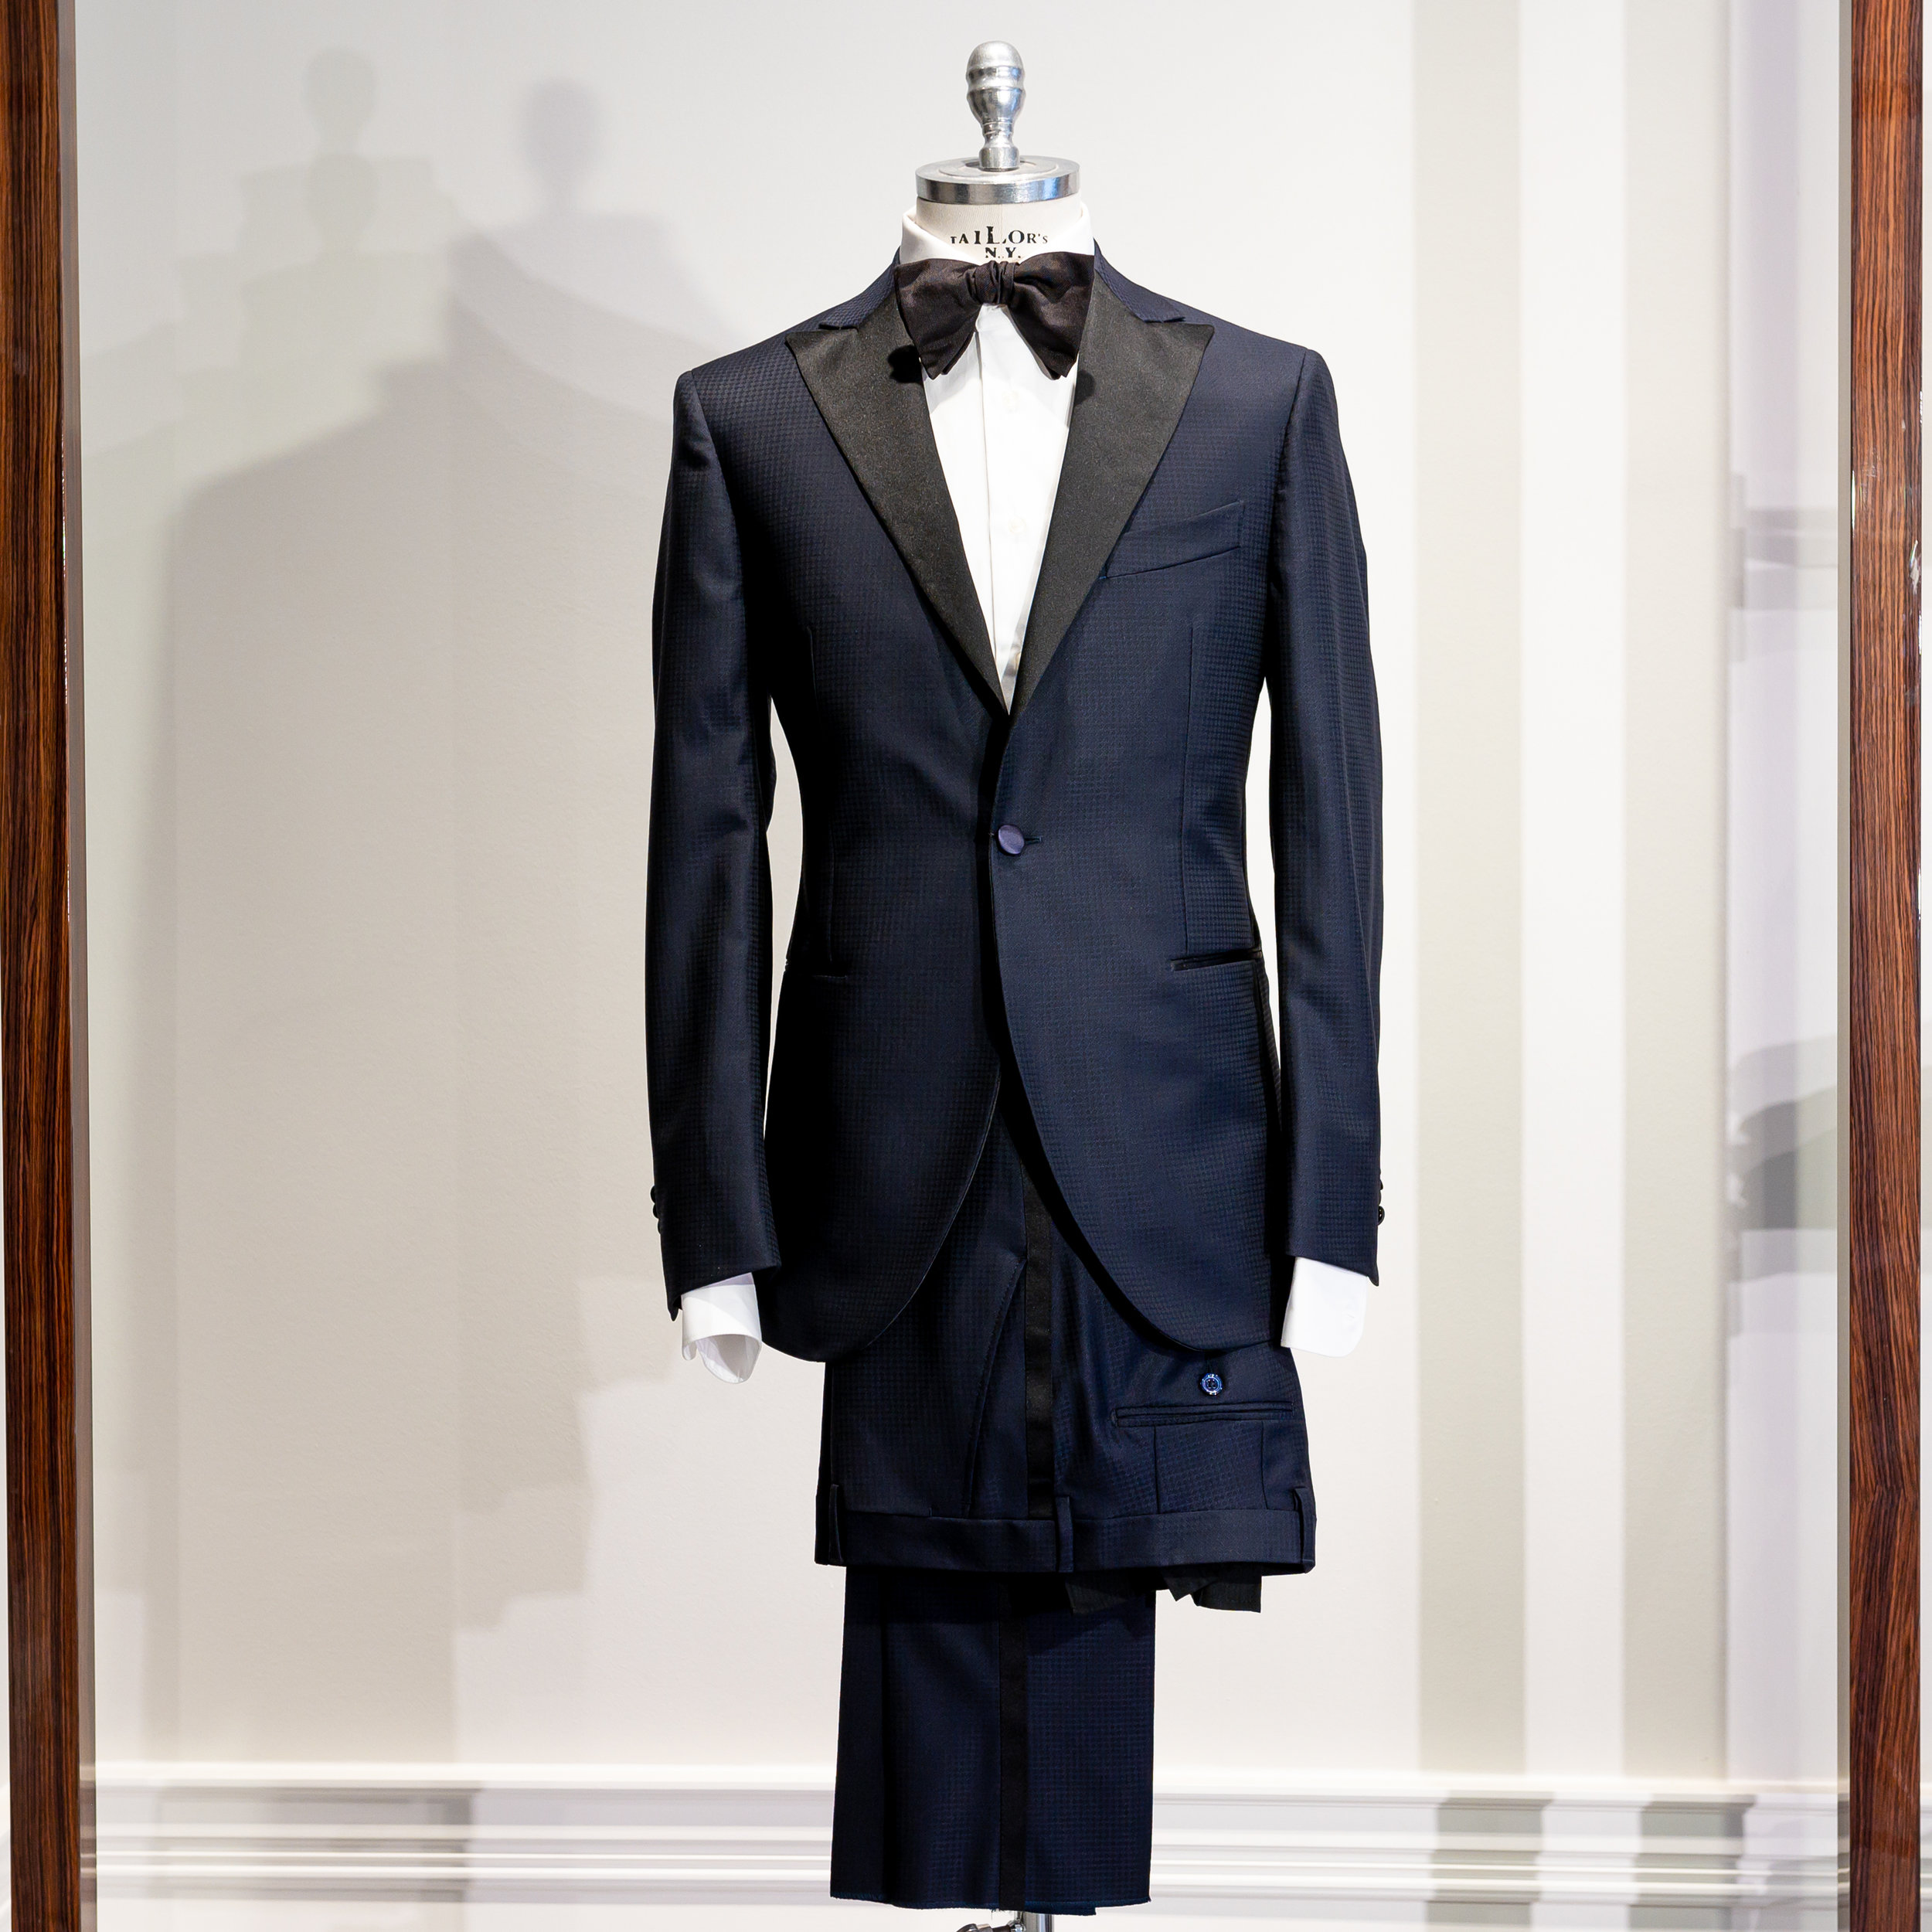 PANGEA  Flannel suit, Midnight Blue   5900 Sek   100% wool, Half canvas, Vitale Barberis, Unconstructed, half lined, 2 flap pockets with ticket pocket, double vents